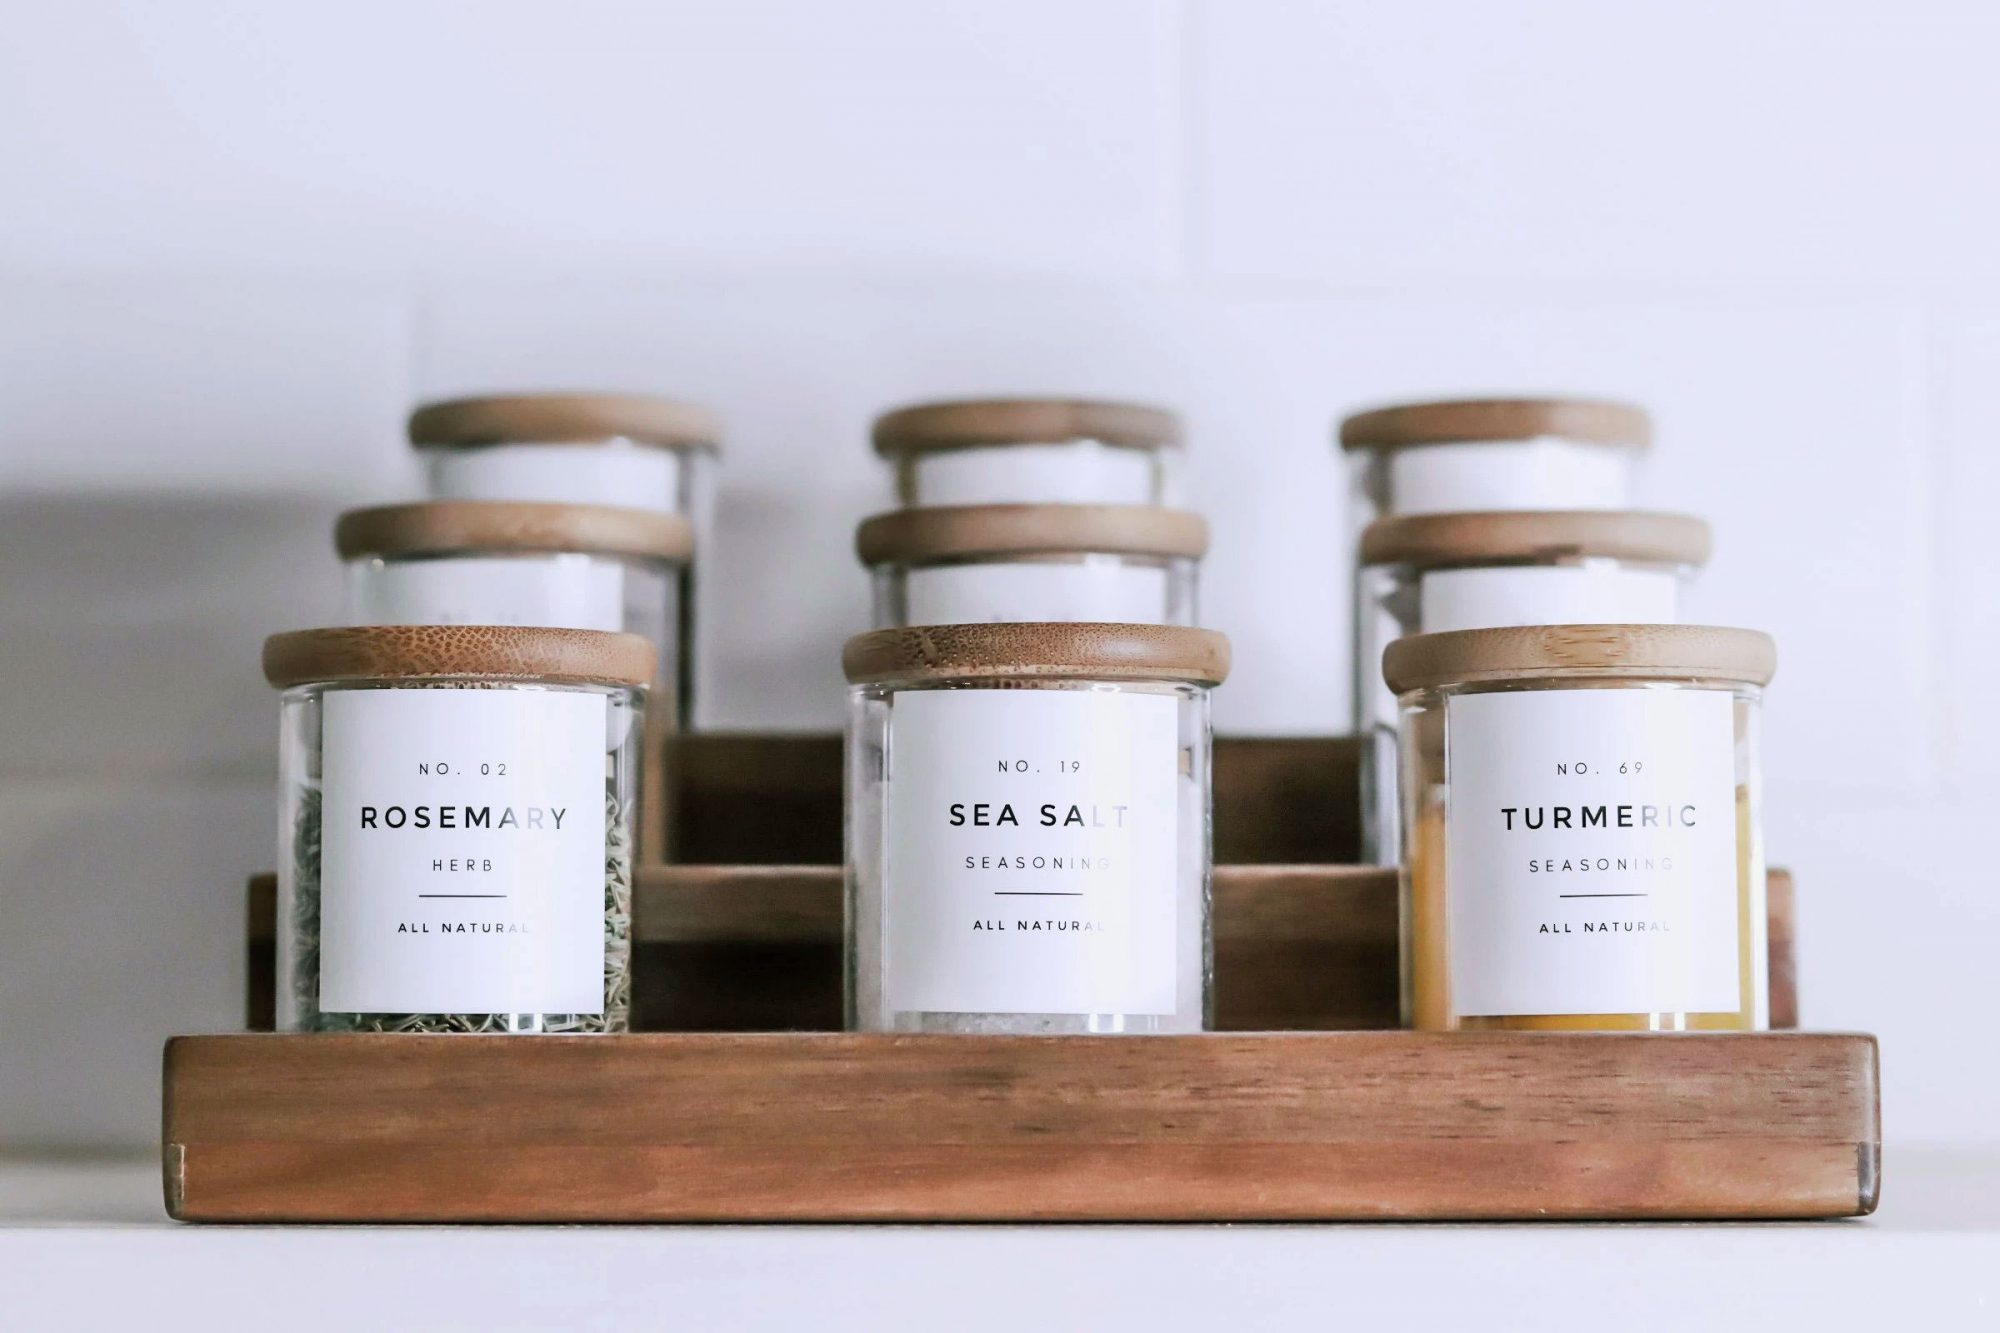 The Muted Home Spice Jars with Wood Lids